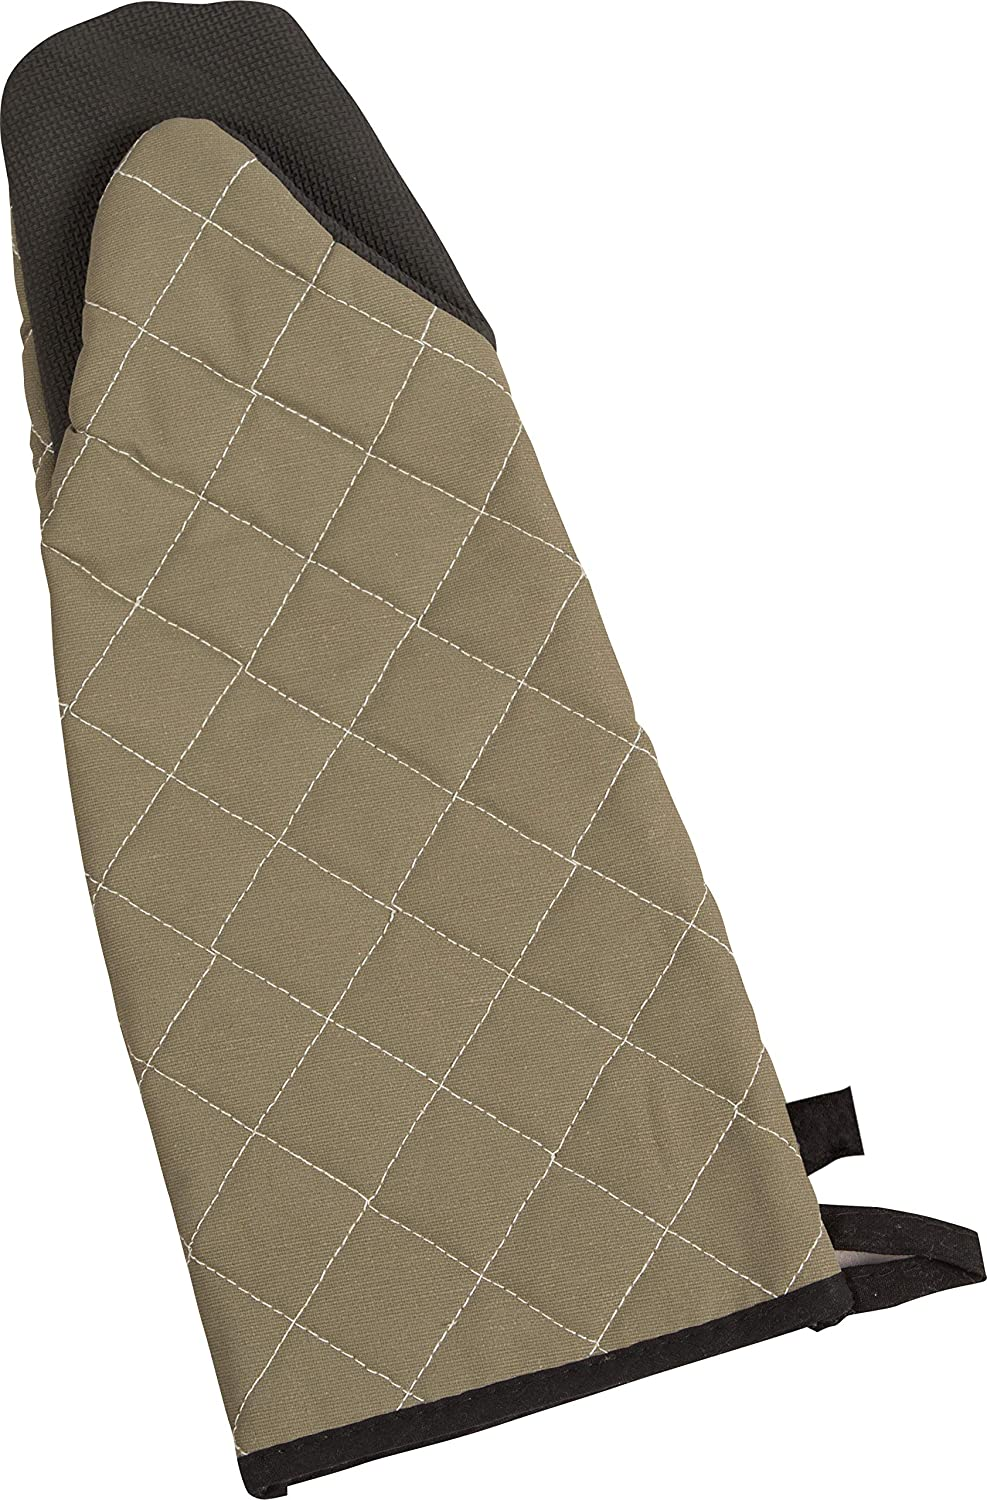 "San Jamar 810PM15 Textured Neoprene Bestgrip Puppet Temperature Protection Oven Mitt with Magnet and WebGuard, 13"" Length, Tan"